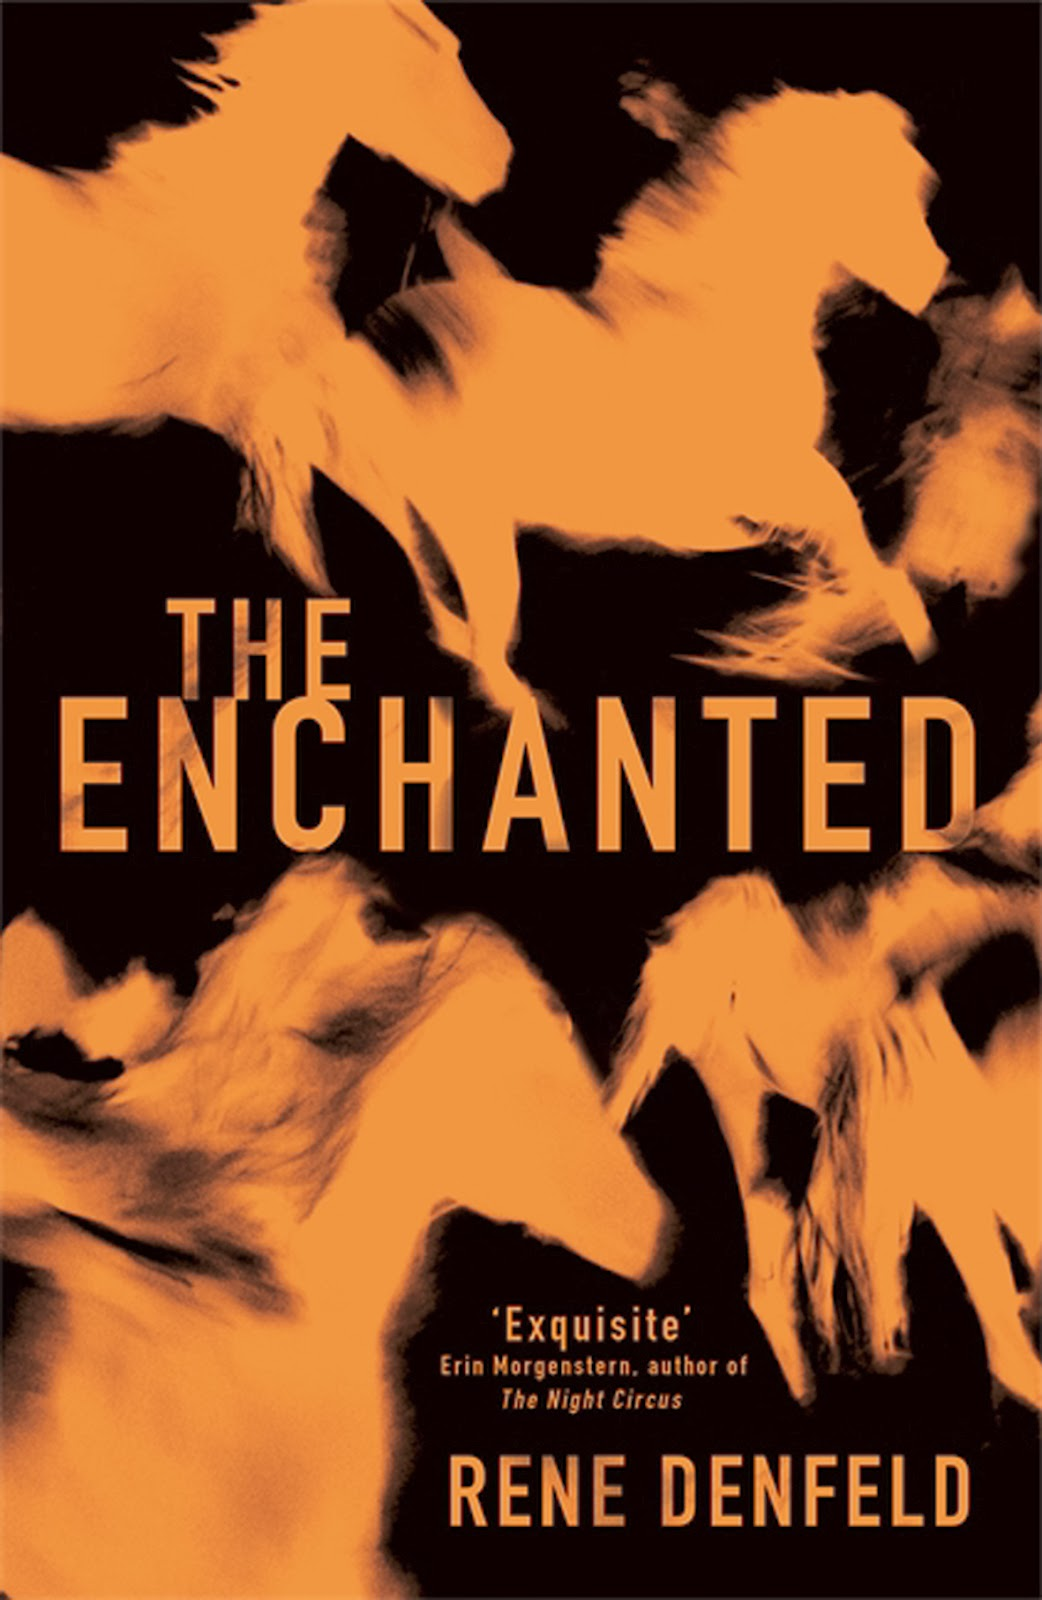 The Enchanted by Rene Denfeld